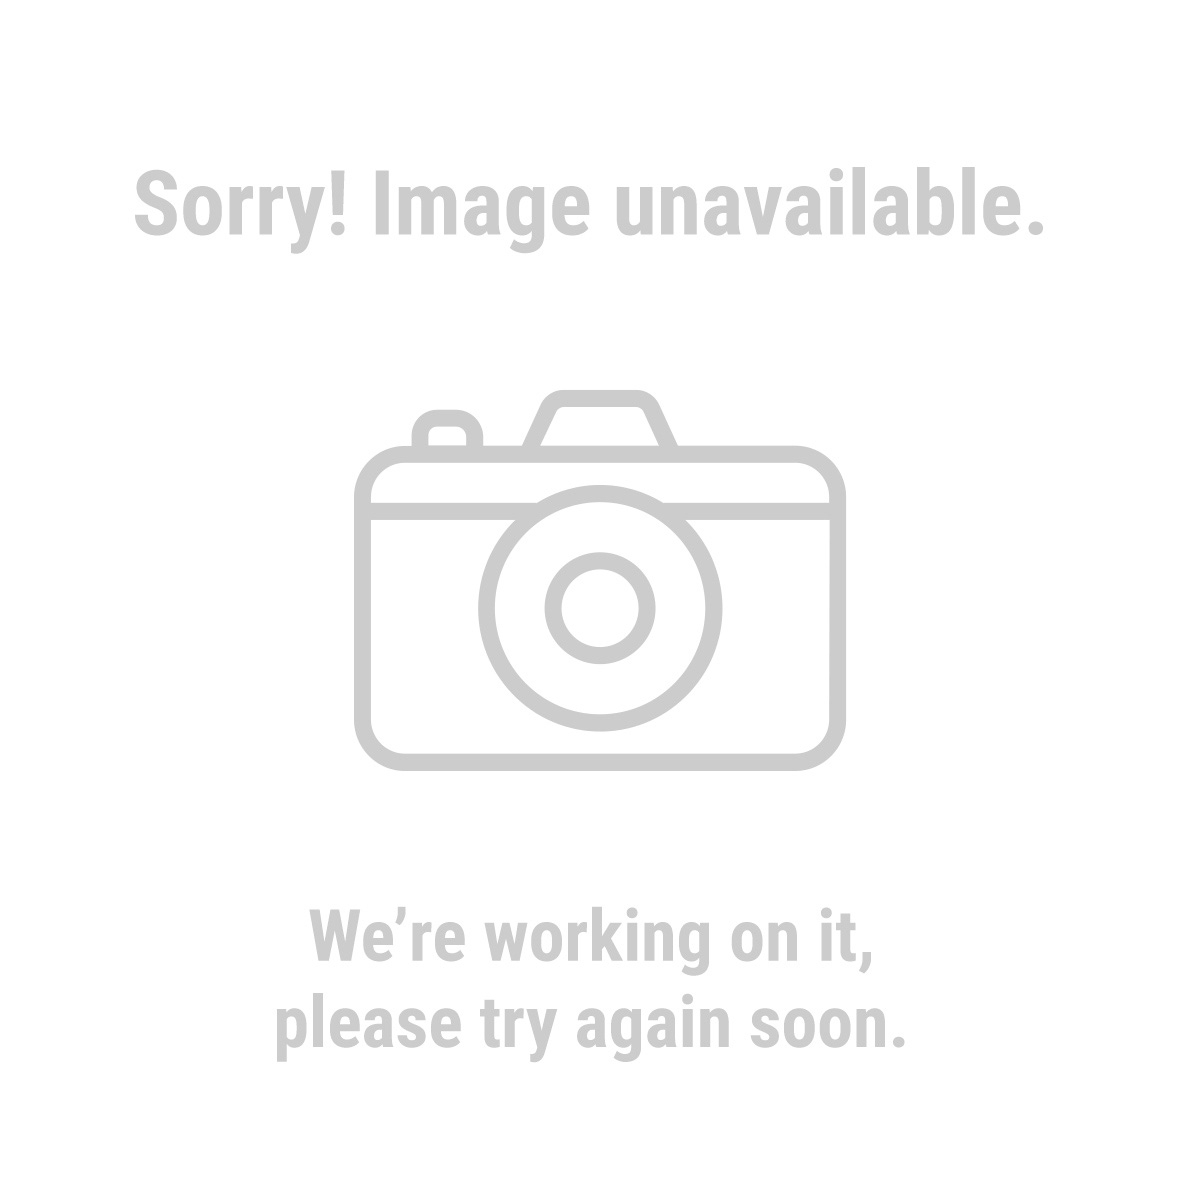 Haul-Master 62644 600 lb. Auto; 200 lb. Motorcycle Capacity 78 in. Tag-Along Trailer